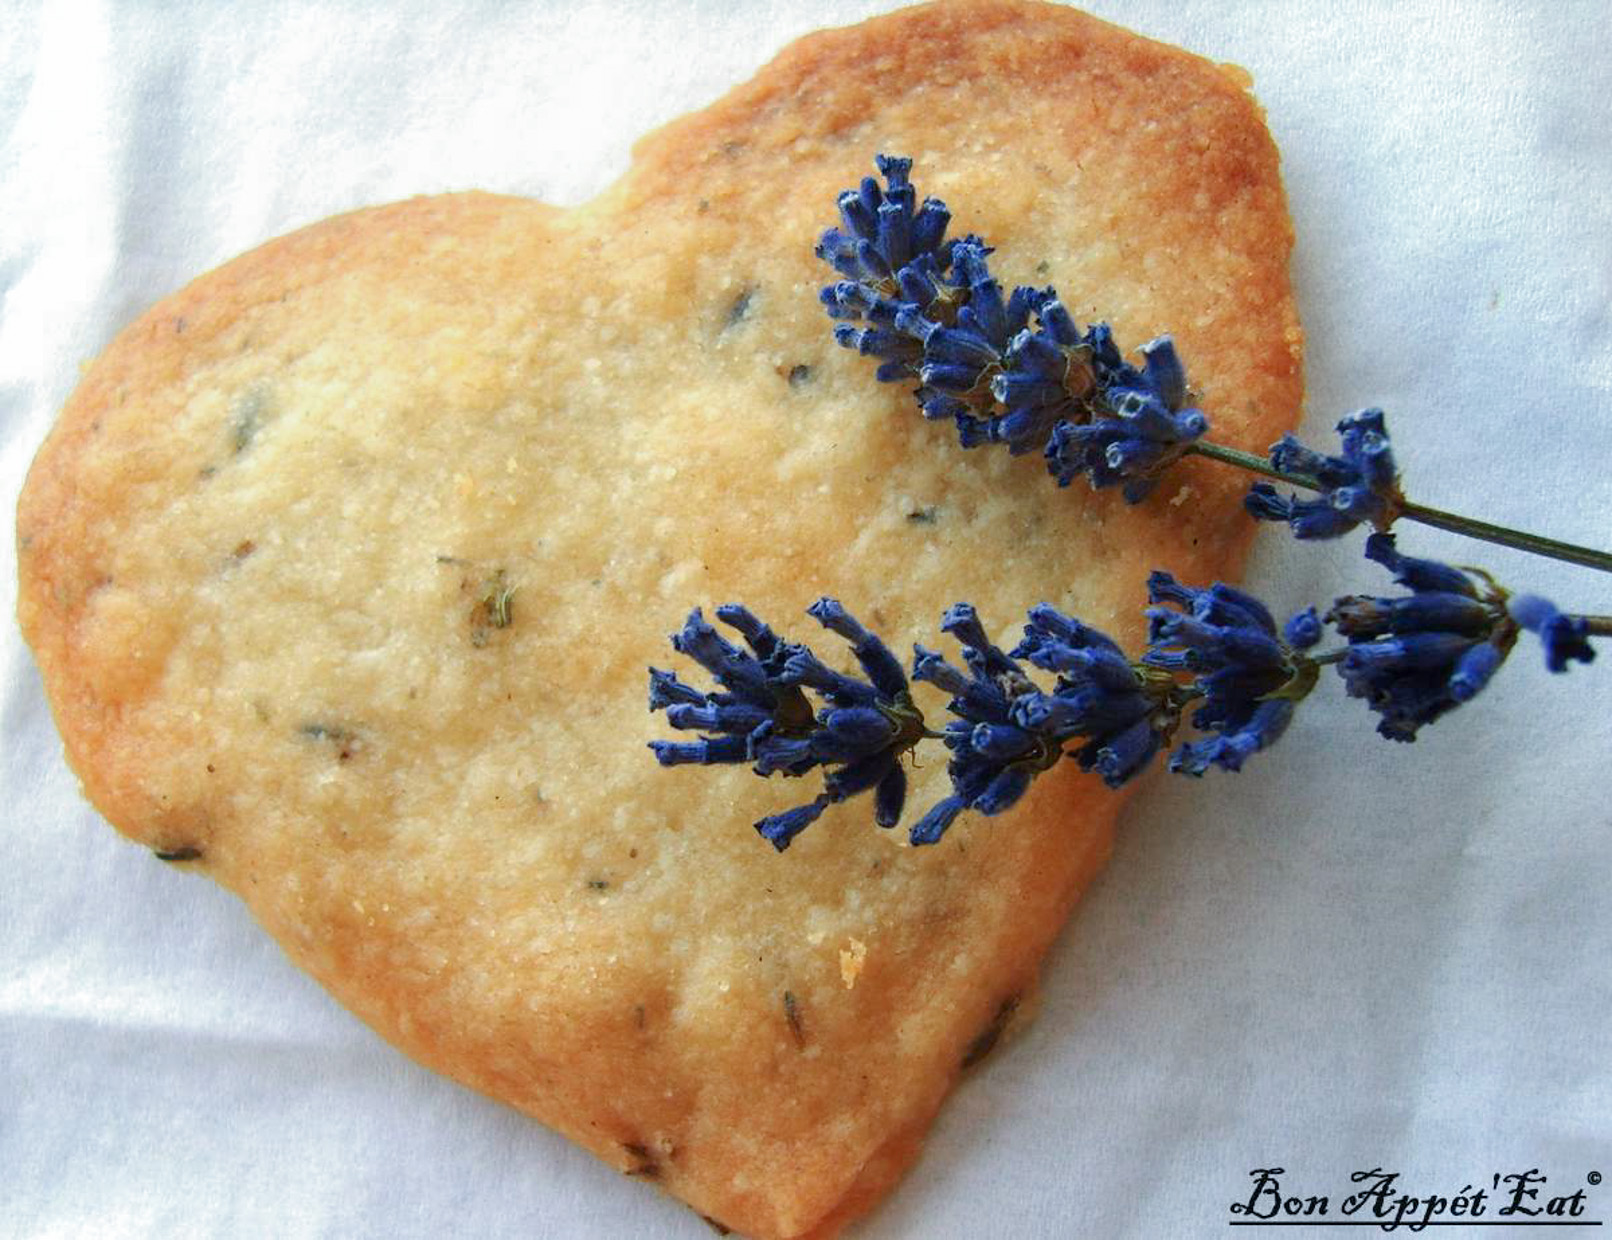 When you need a break, take a bite of Provence with a lavender shortbread cookie!